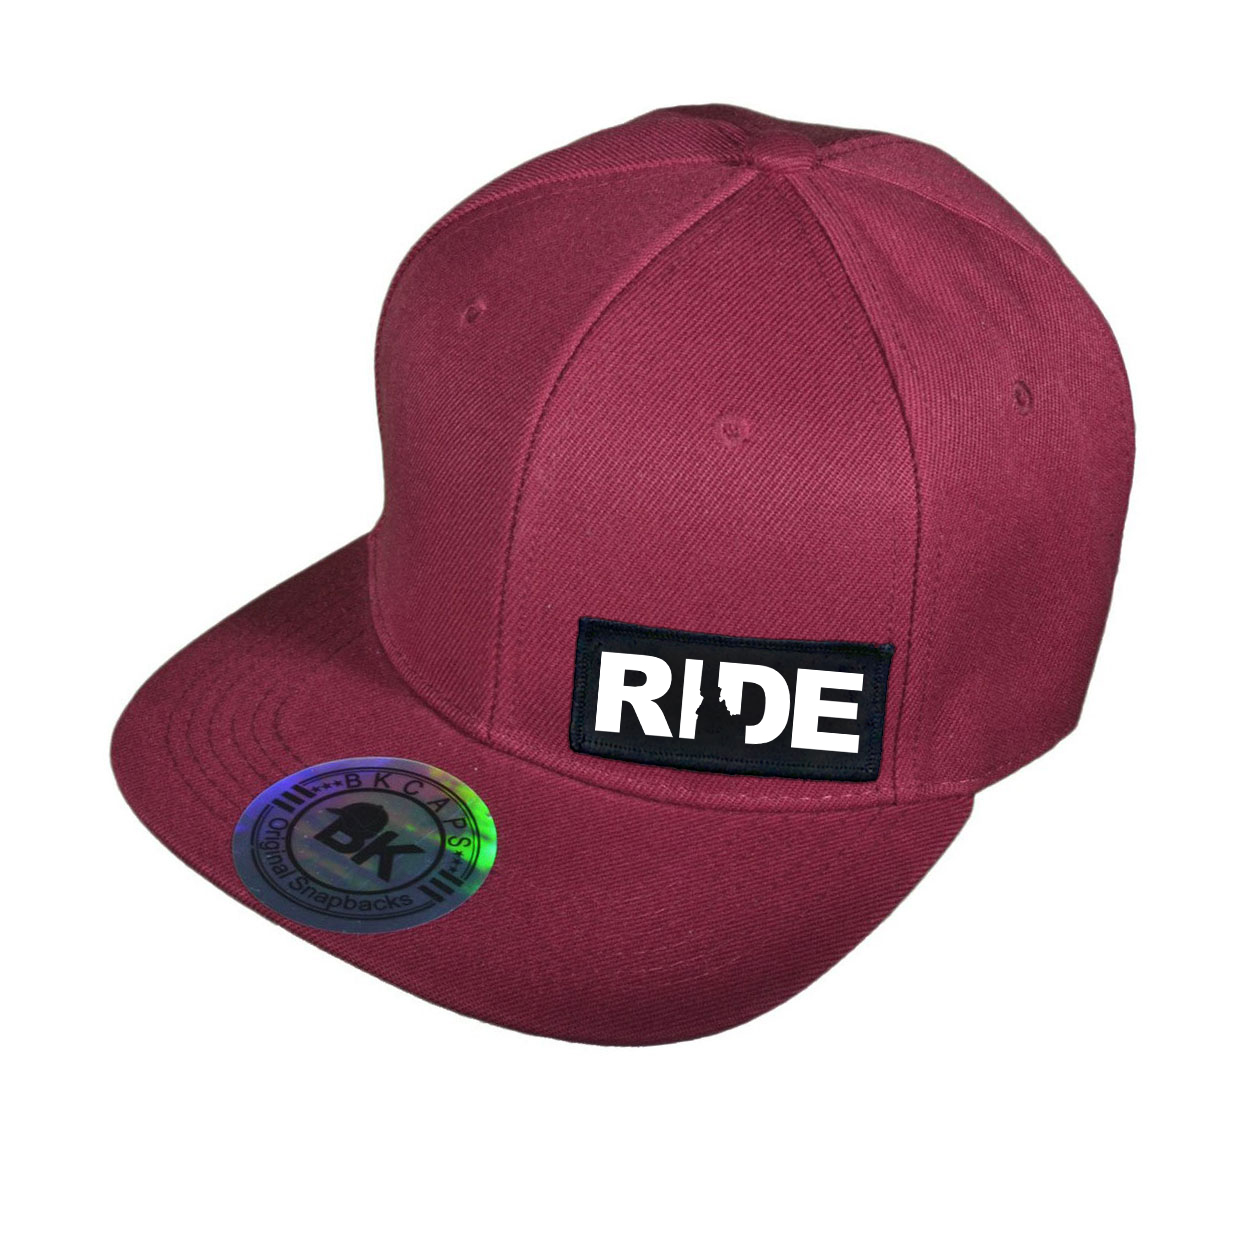 Ride Idaho Night Out Woven Patch Snapback Flat Brim Hat Burgundy (White Logo)